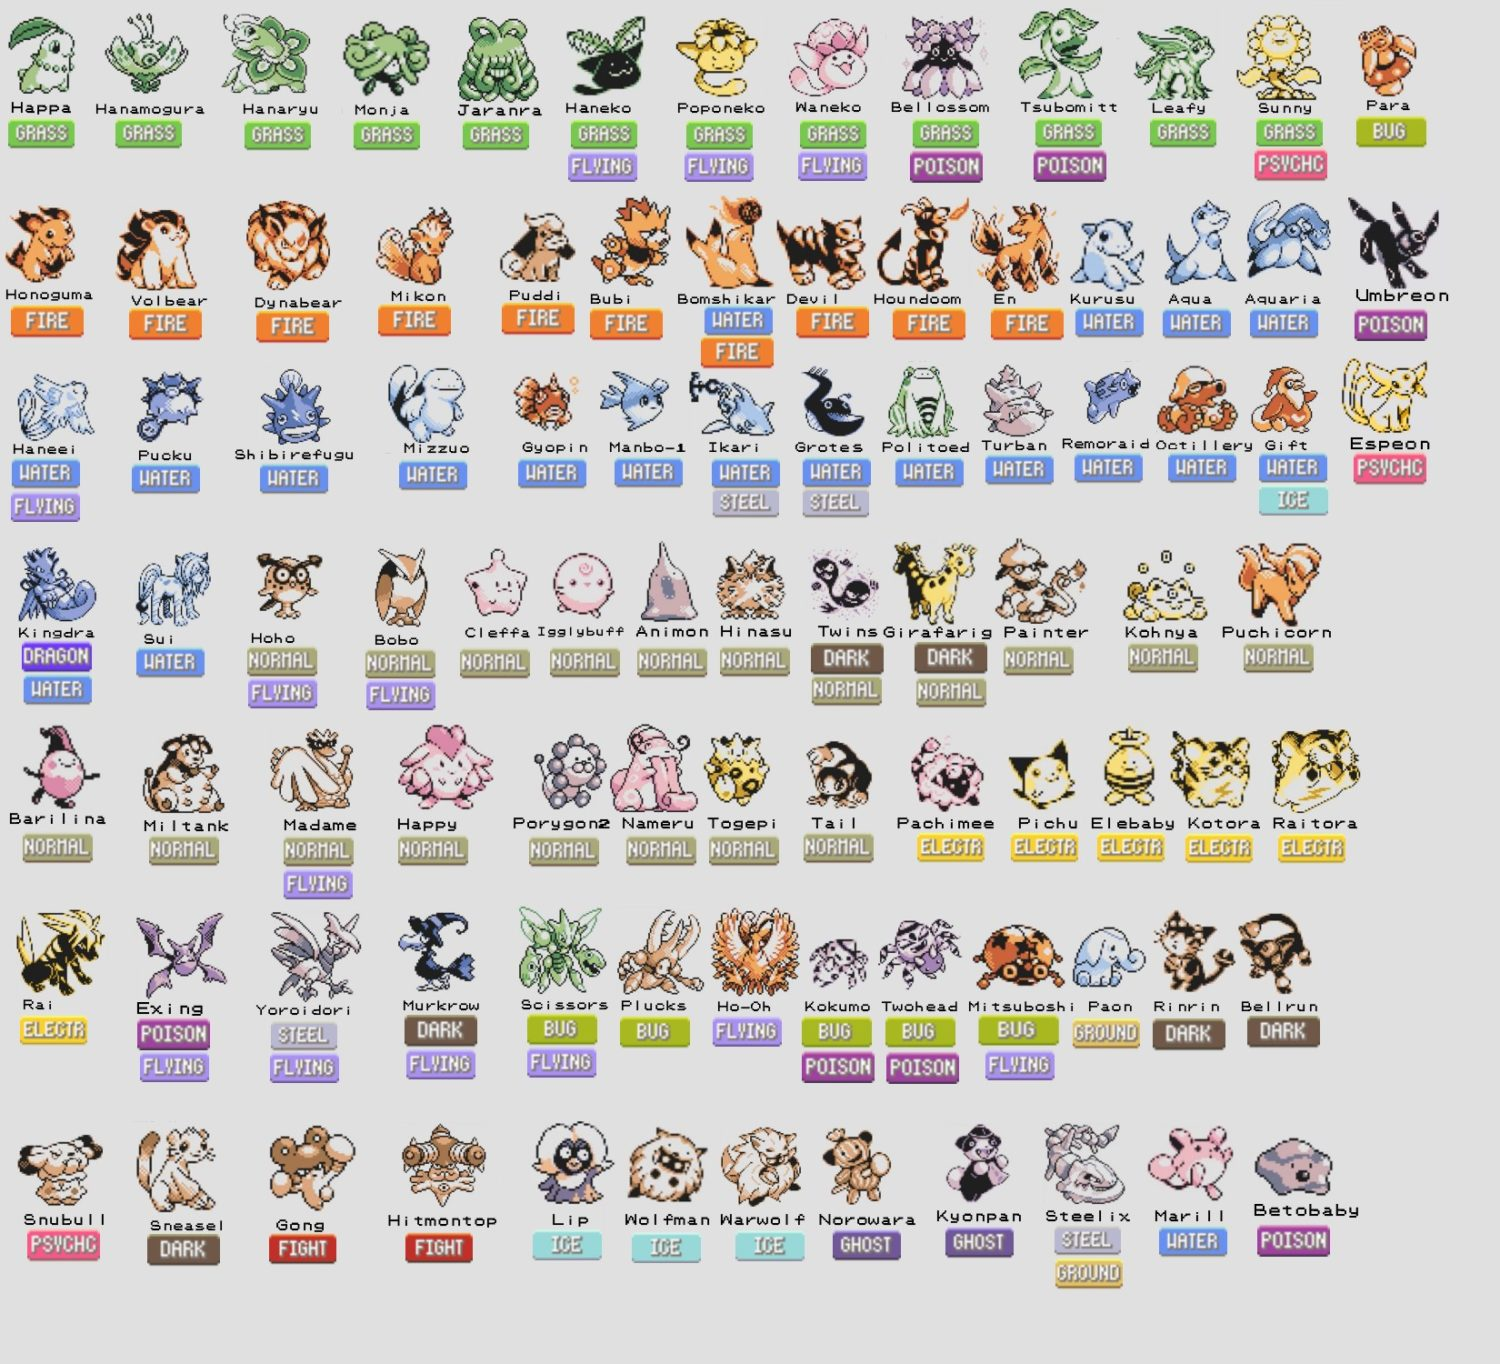 Here's A Look At Prototype Pokemon With Names And Typing